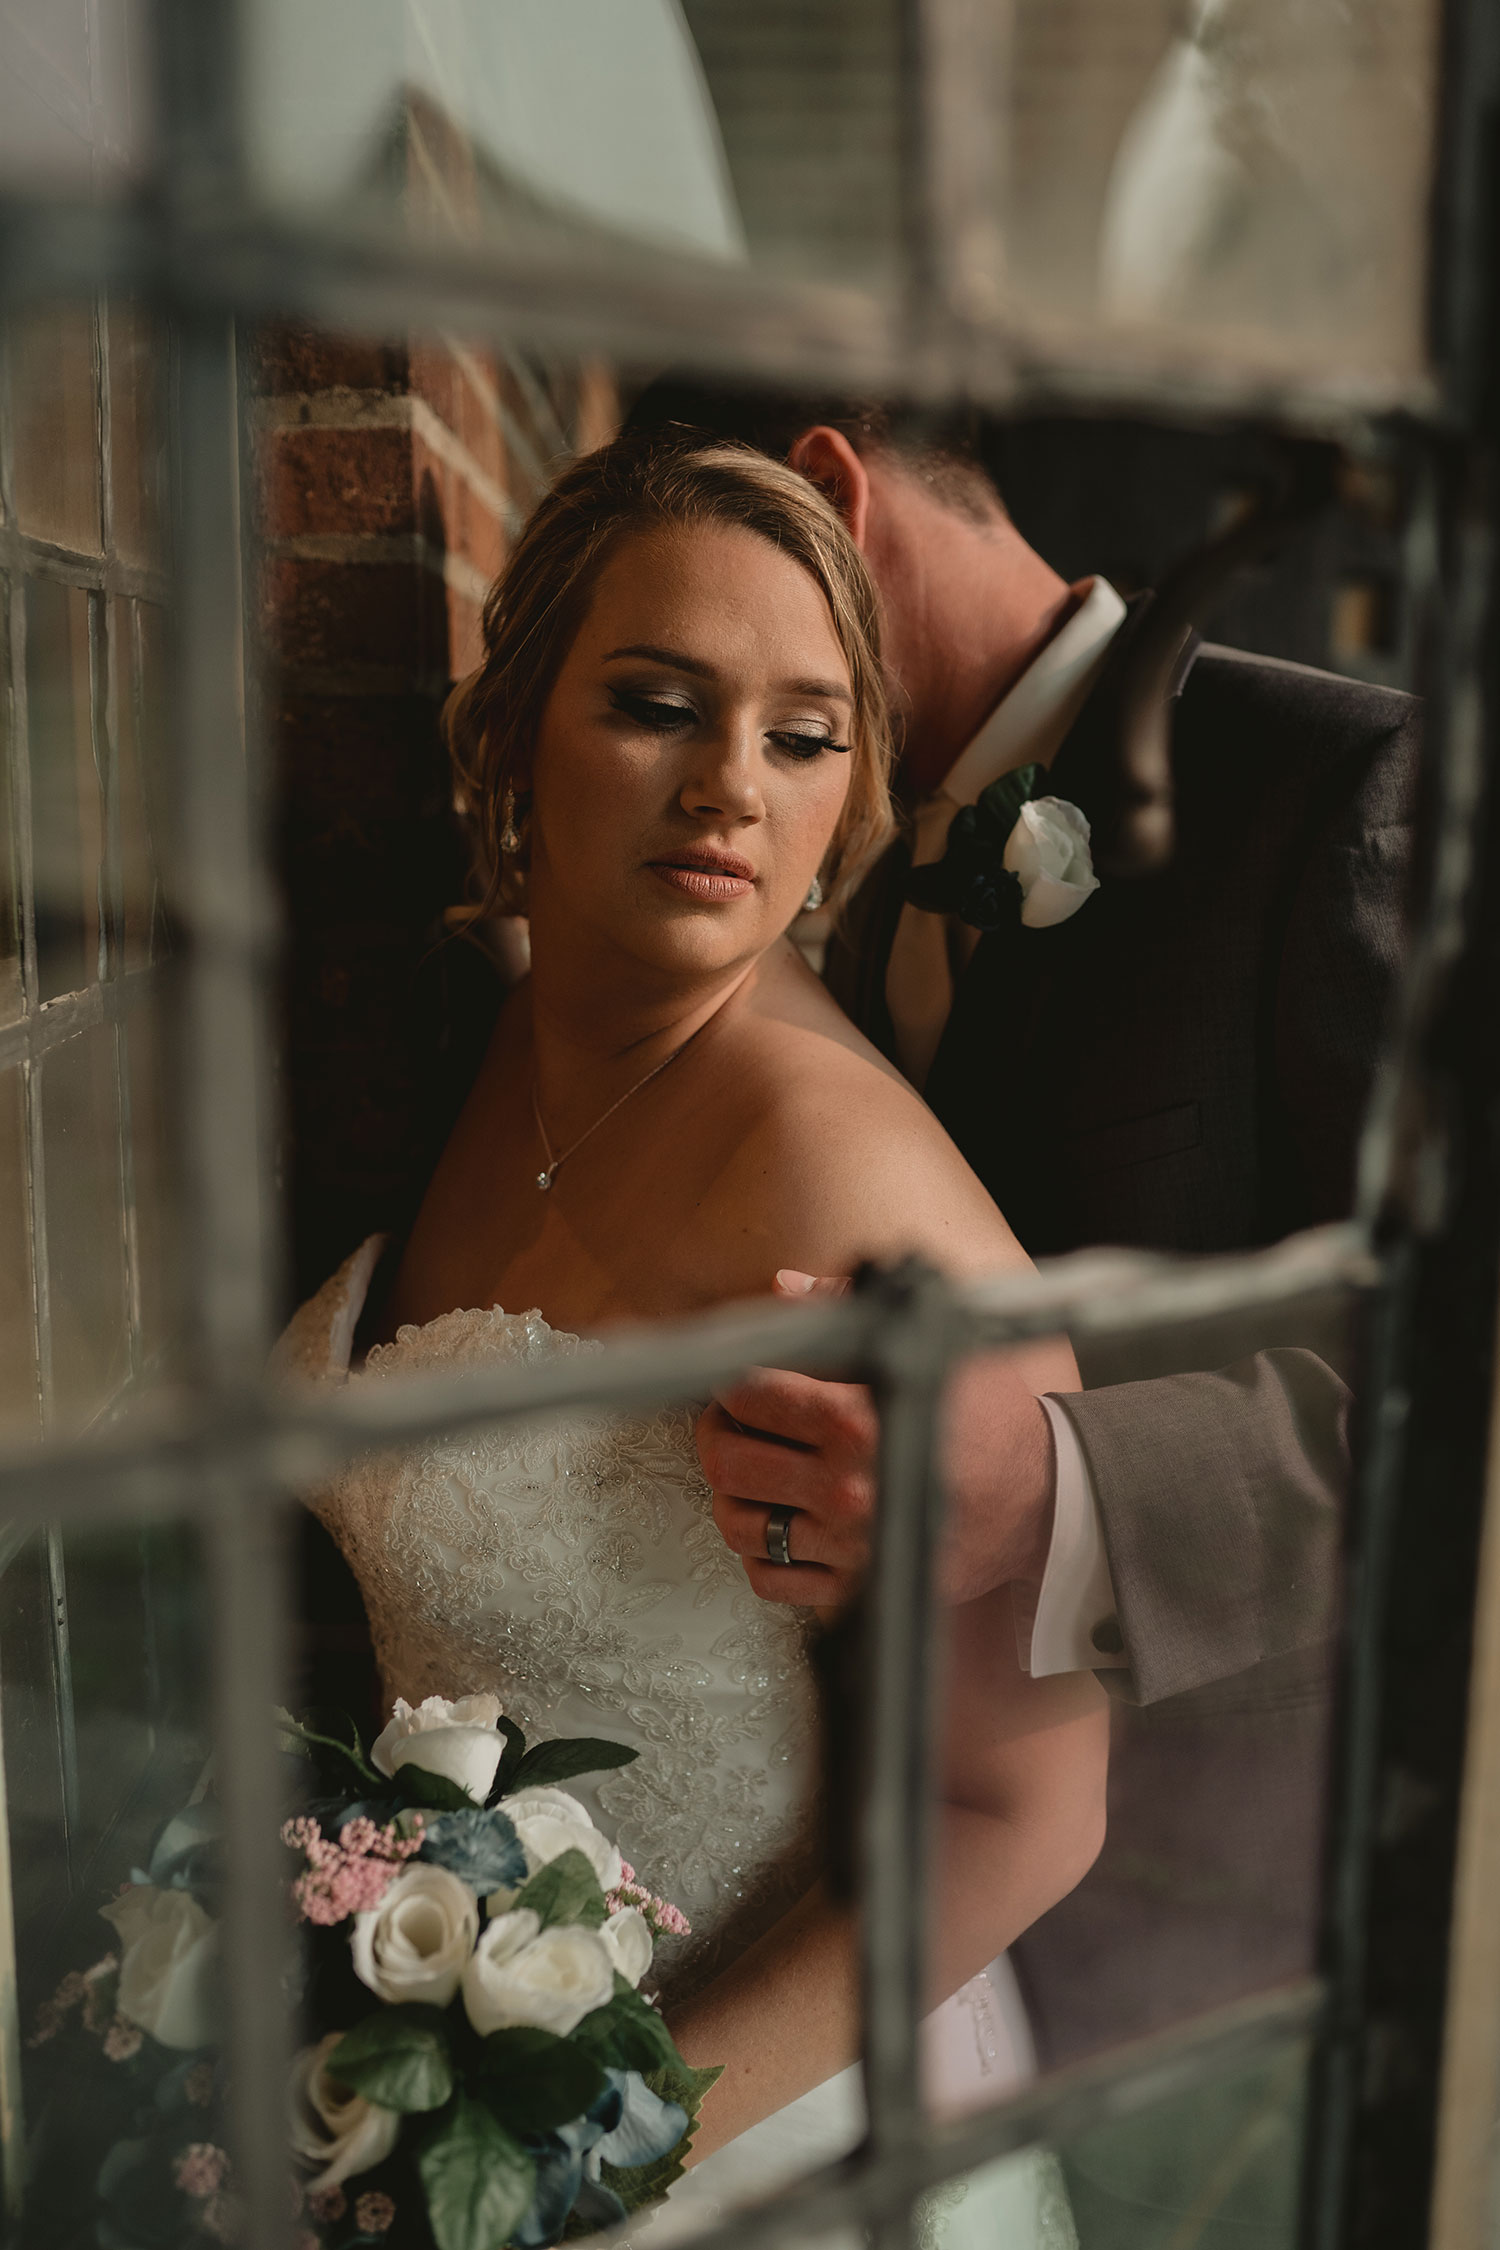 looking-through-an-old-window-at-bride-and-groom-decades-event-center-building-desmoines-iowa-raelyn-ramey-photography..jpg